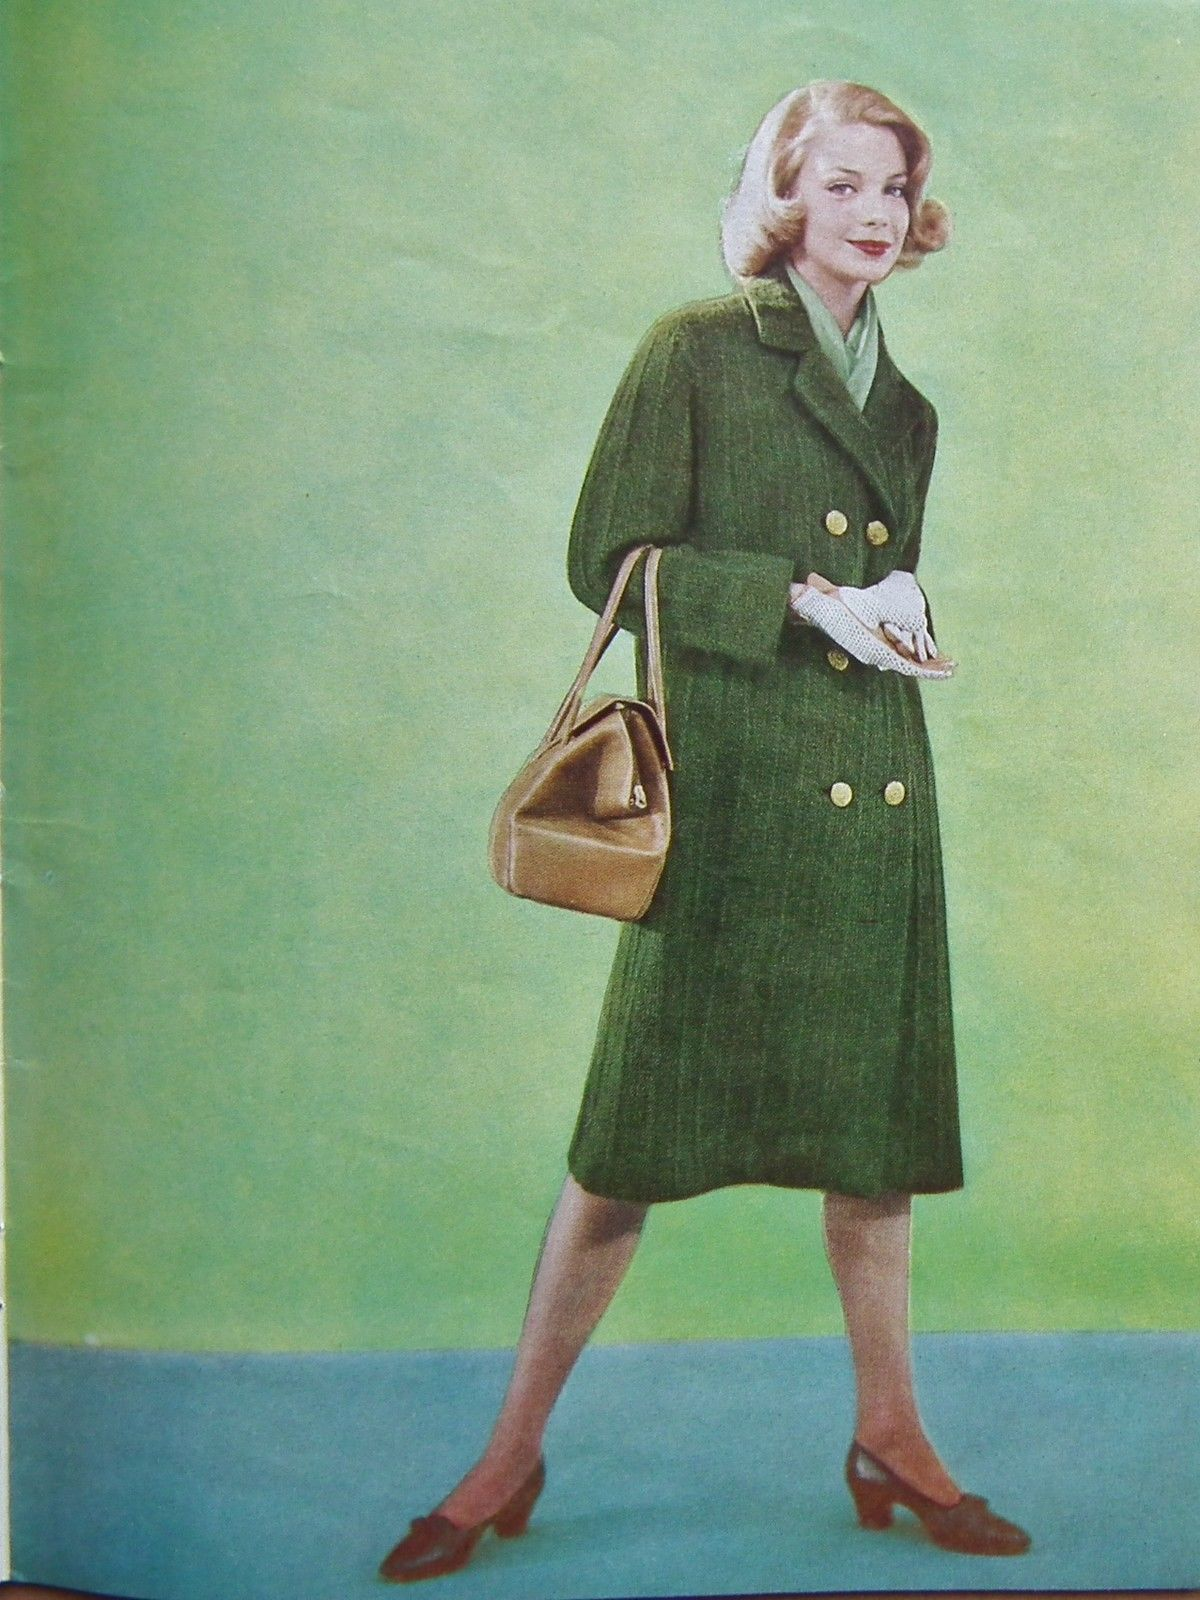 Vintage 50s vogue knitting no 55 original patterns book womens vintage vogue knitting no 55 original patterns book womens sweaters suits in crafts crocheting knitting vintage patterns bankloansurffo Choice Image